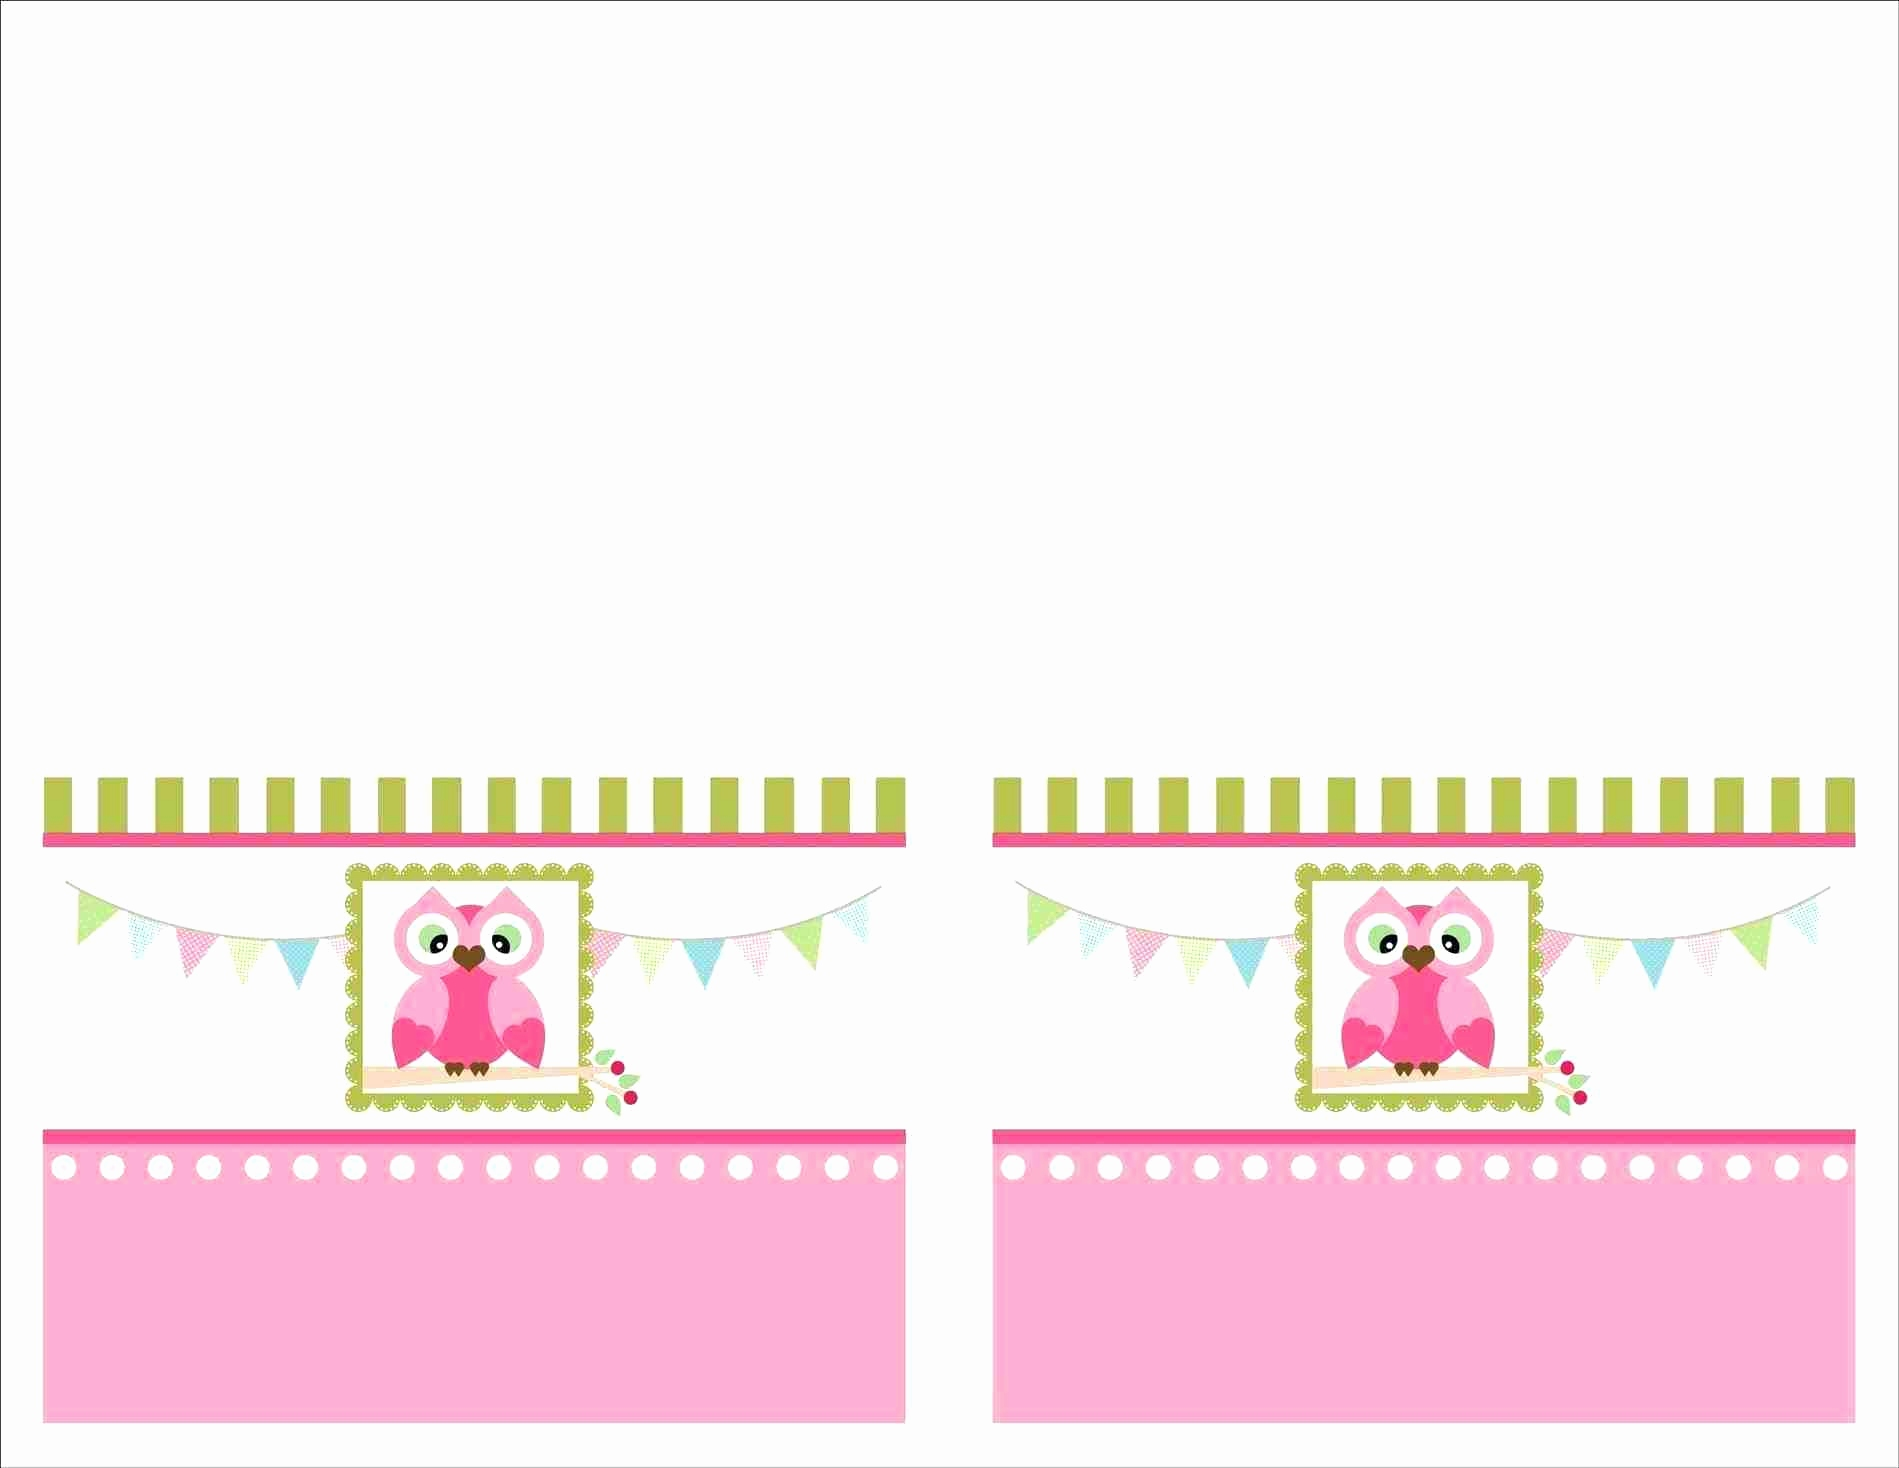 hello kitty birthday card printable free ; hello-kitty-birthday-card-printable-free-lovely-template-kids-birthday-invitation-card-template-of-hello-kitty-birthday-card-printable-free